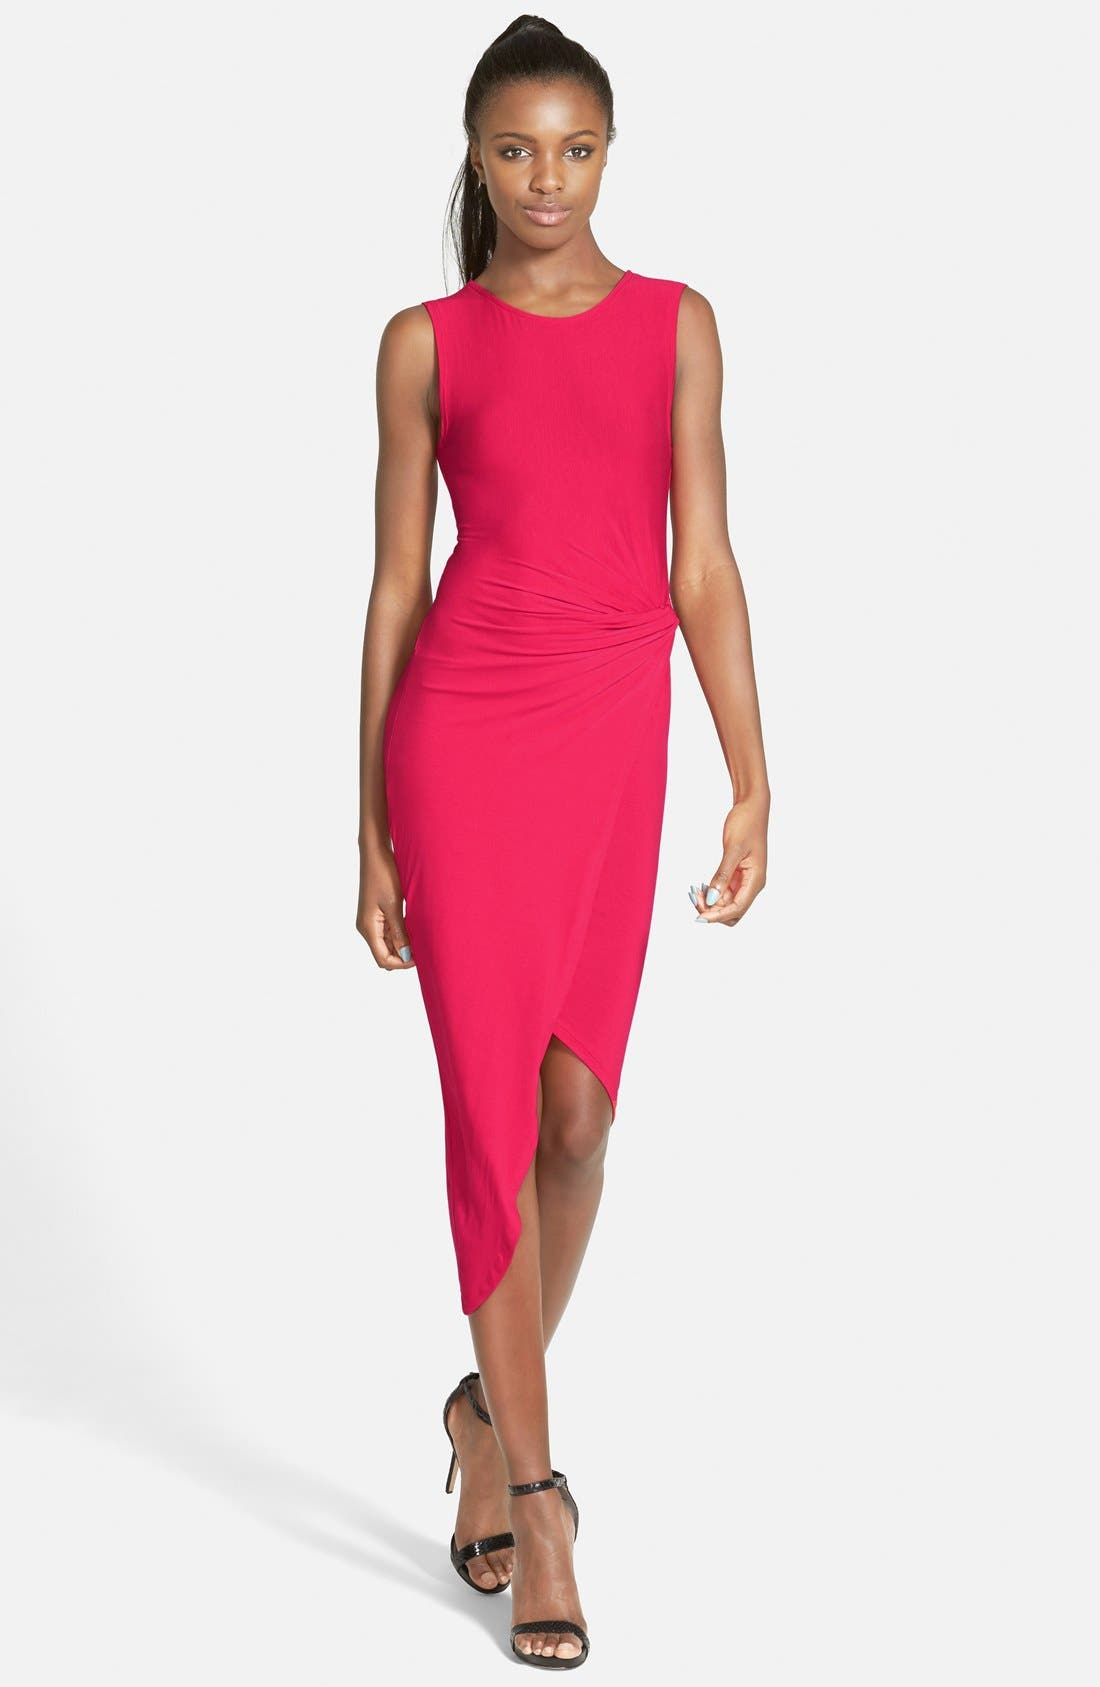 Main Image - ASTR Knotted Body-Con Dress